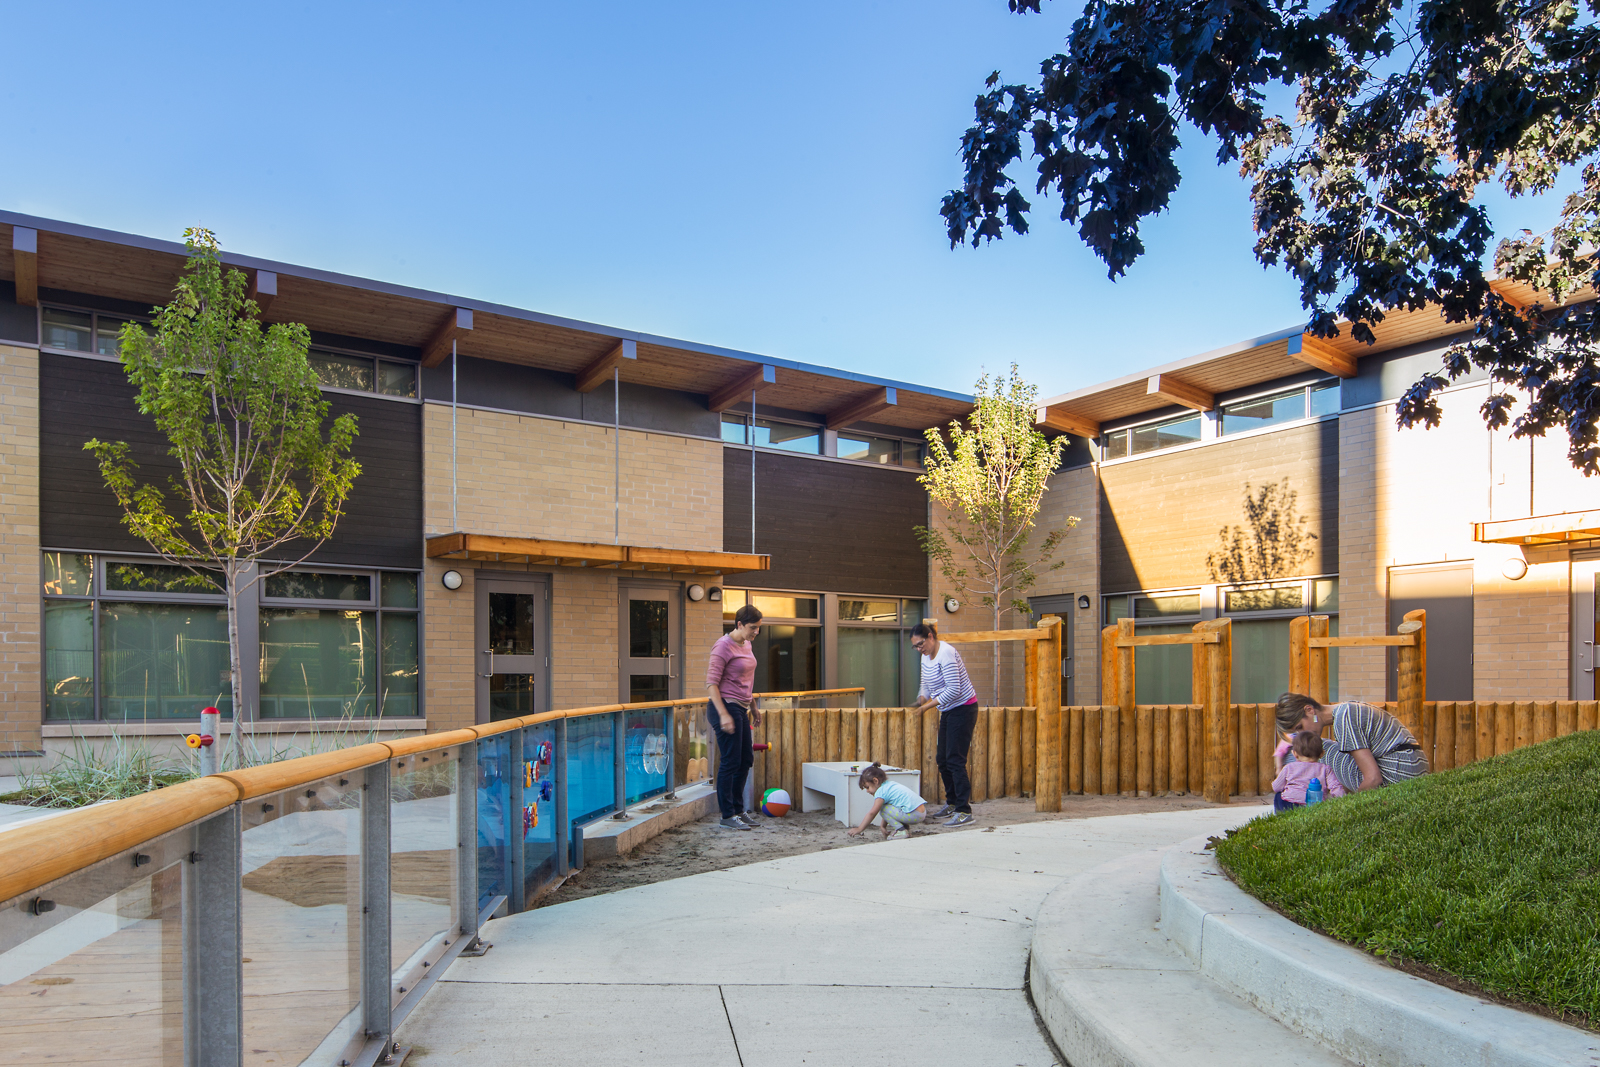 Photo credit: DTAH/DTAH Architects Limited